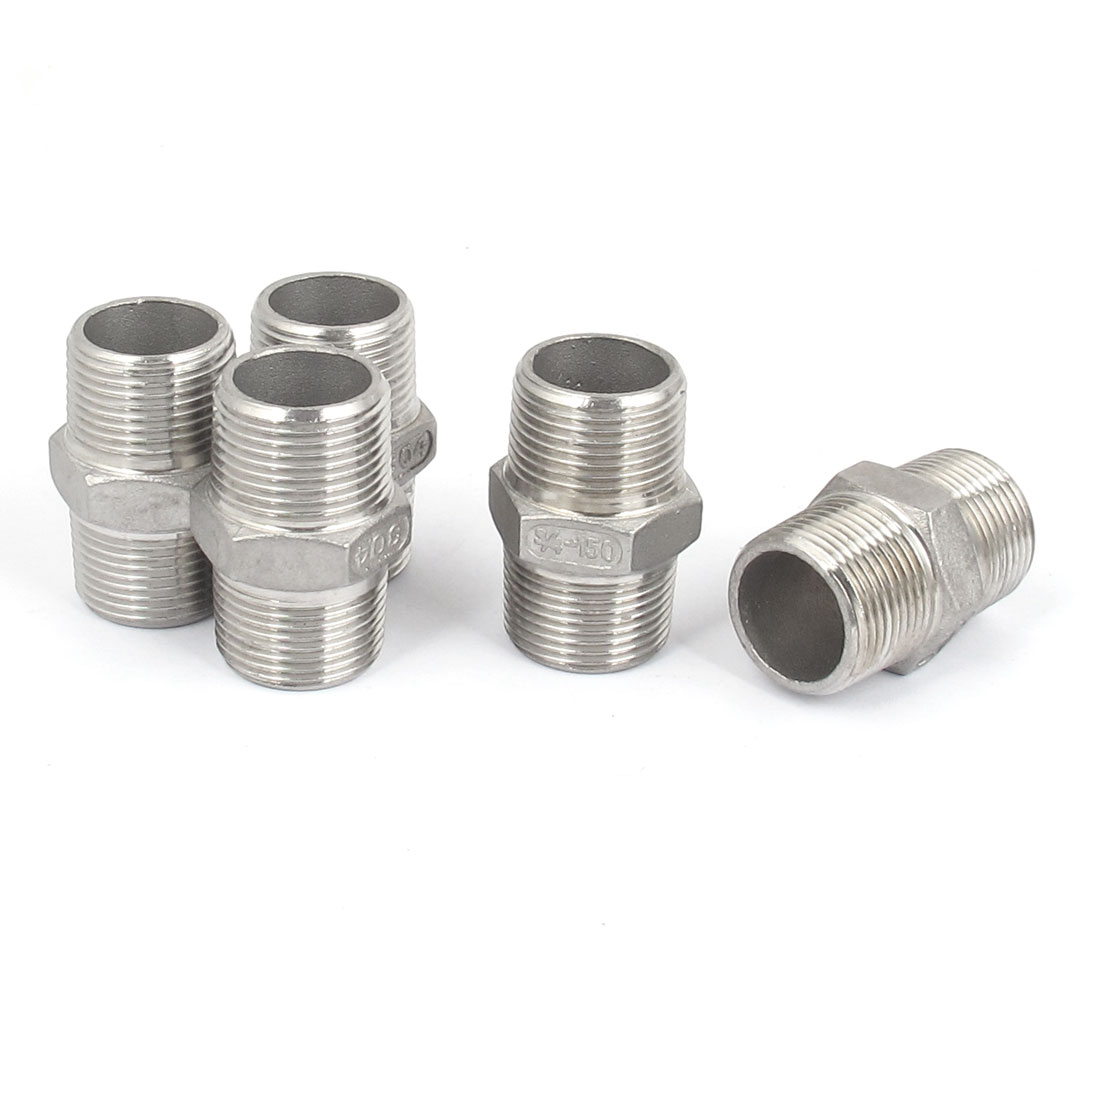 3/4 BSP to 3/4 BSP Male Thread Hex Nipple Quick Coupler Silver Tone 5 Pcs